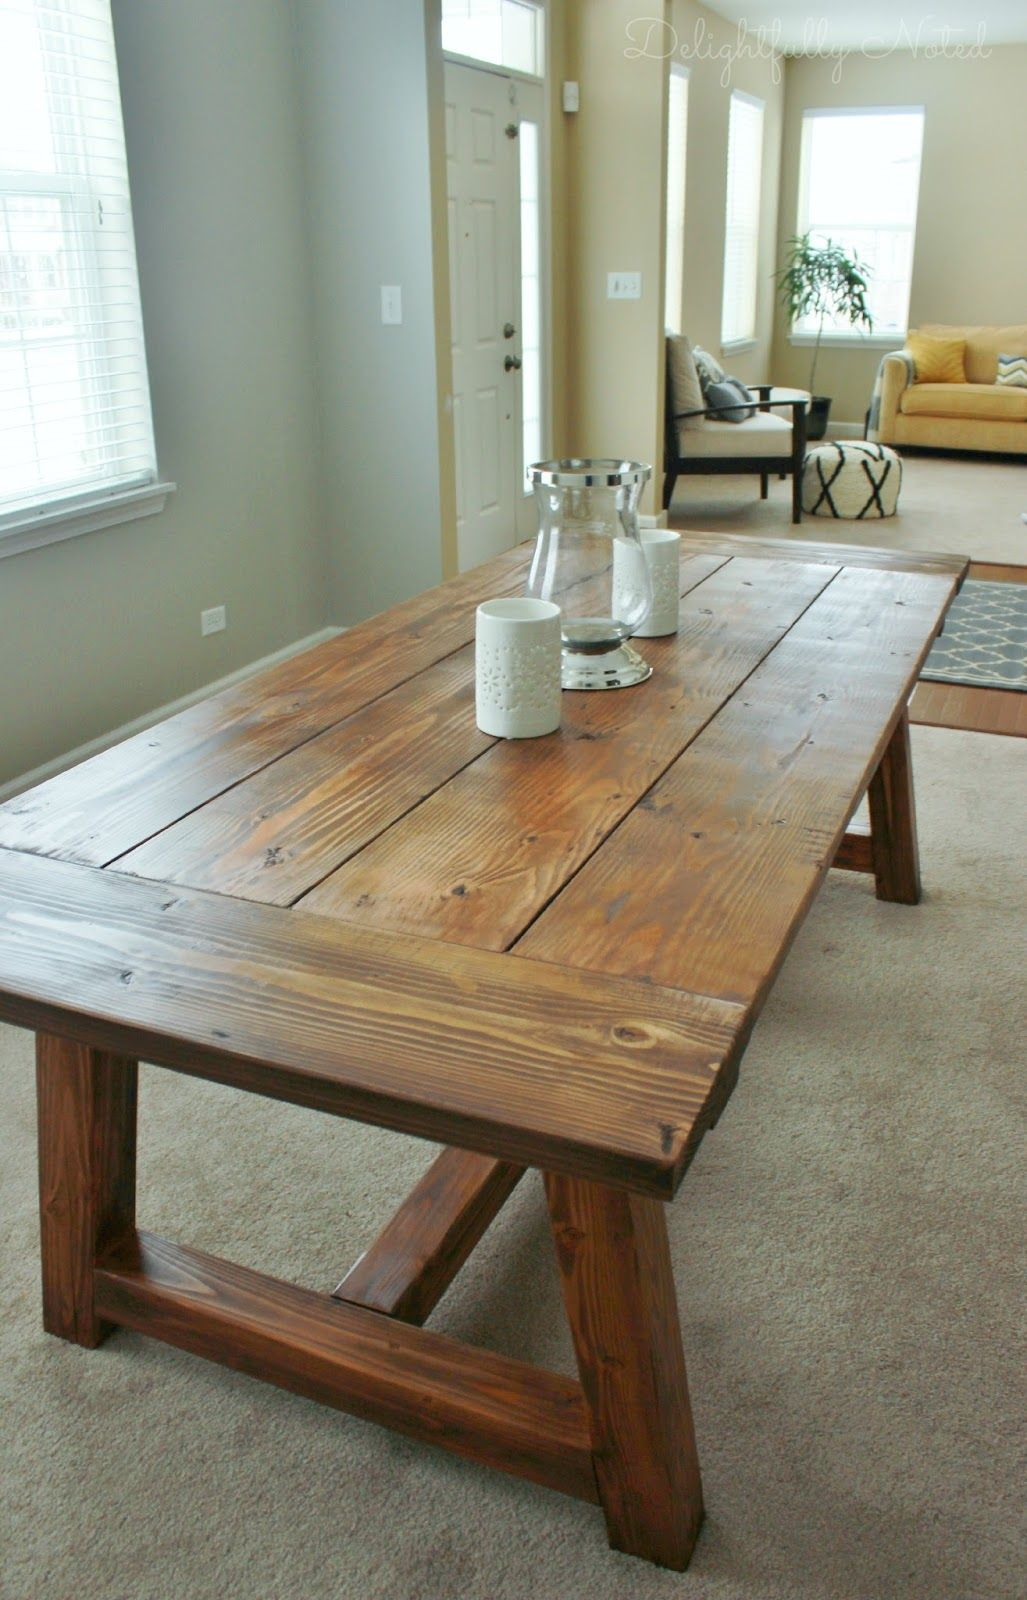 Nice DIY Farmhouse Table Restoration Hardware Knockoff. Farmhouse Dining Room ...